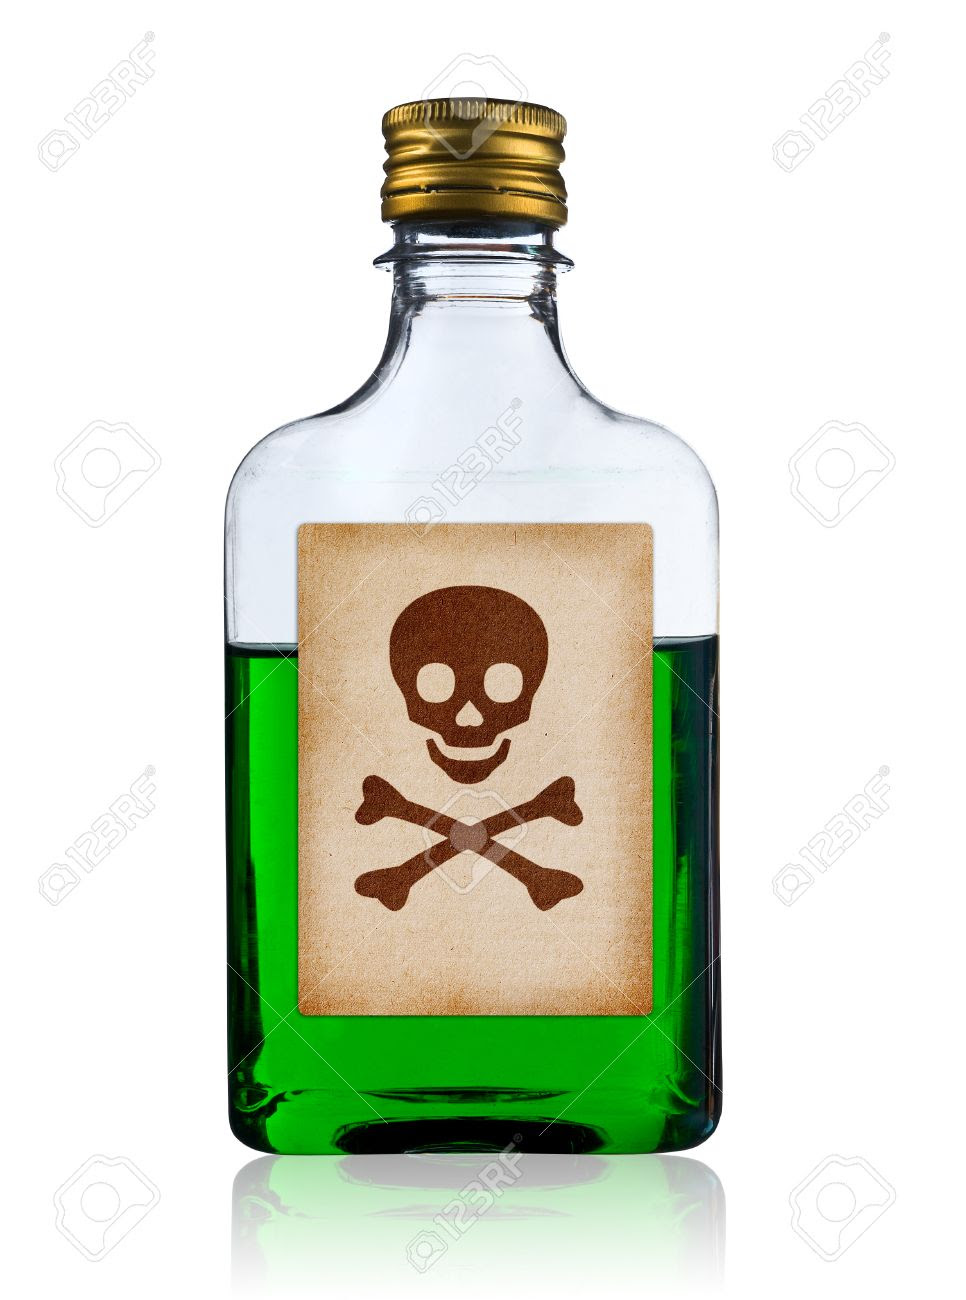 Image result for poison bottle